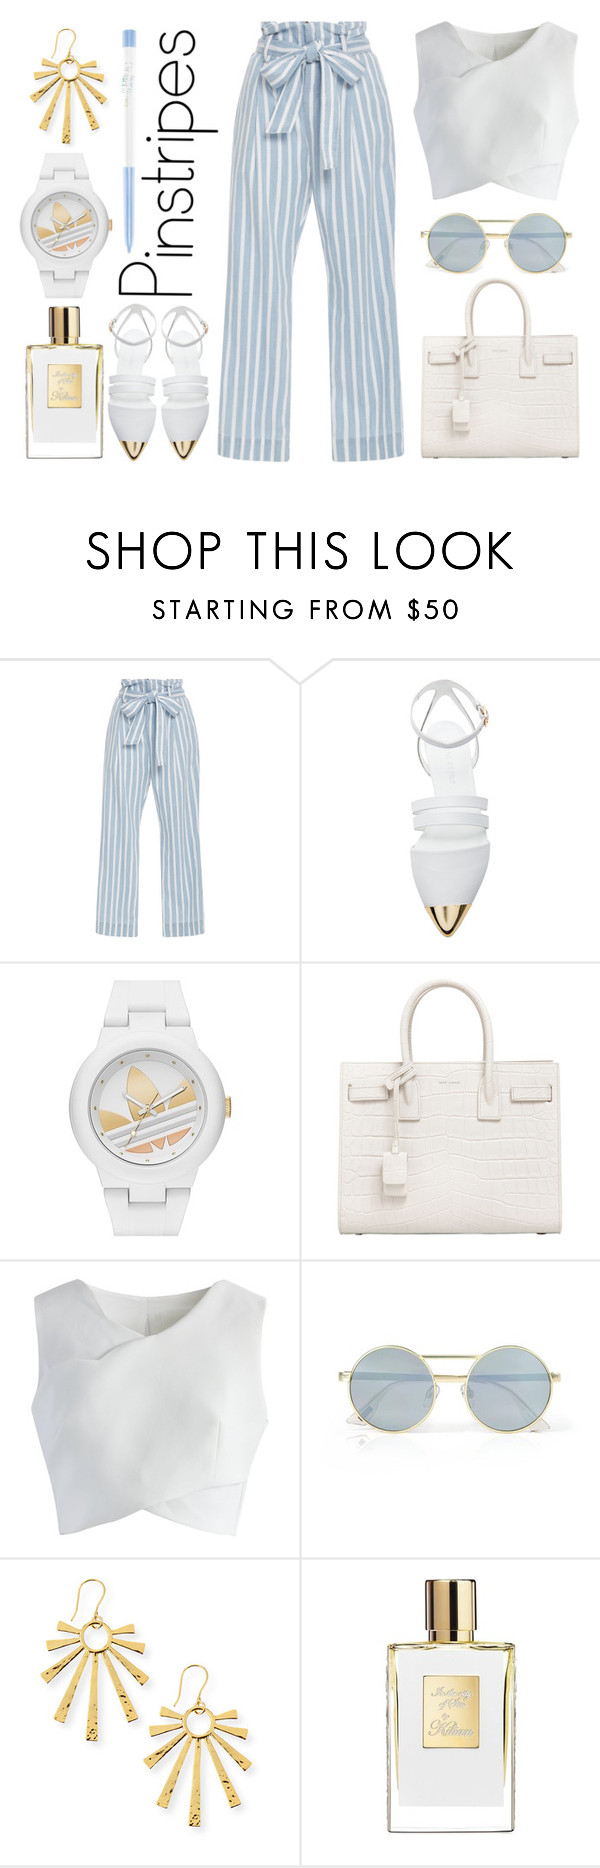 """""""Classic Chic: Pinstripes"""" by stavrolga on Polyvore featuring Frame Denim, Jenni Kayne, adidas, Yves Saint Laurent, Chicwish, Le Specs, NEST Jewelry, polyvoreeditorial, pinstripes and polyvorecontest"""